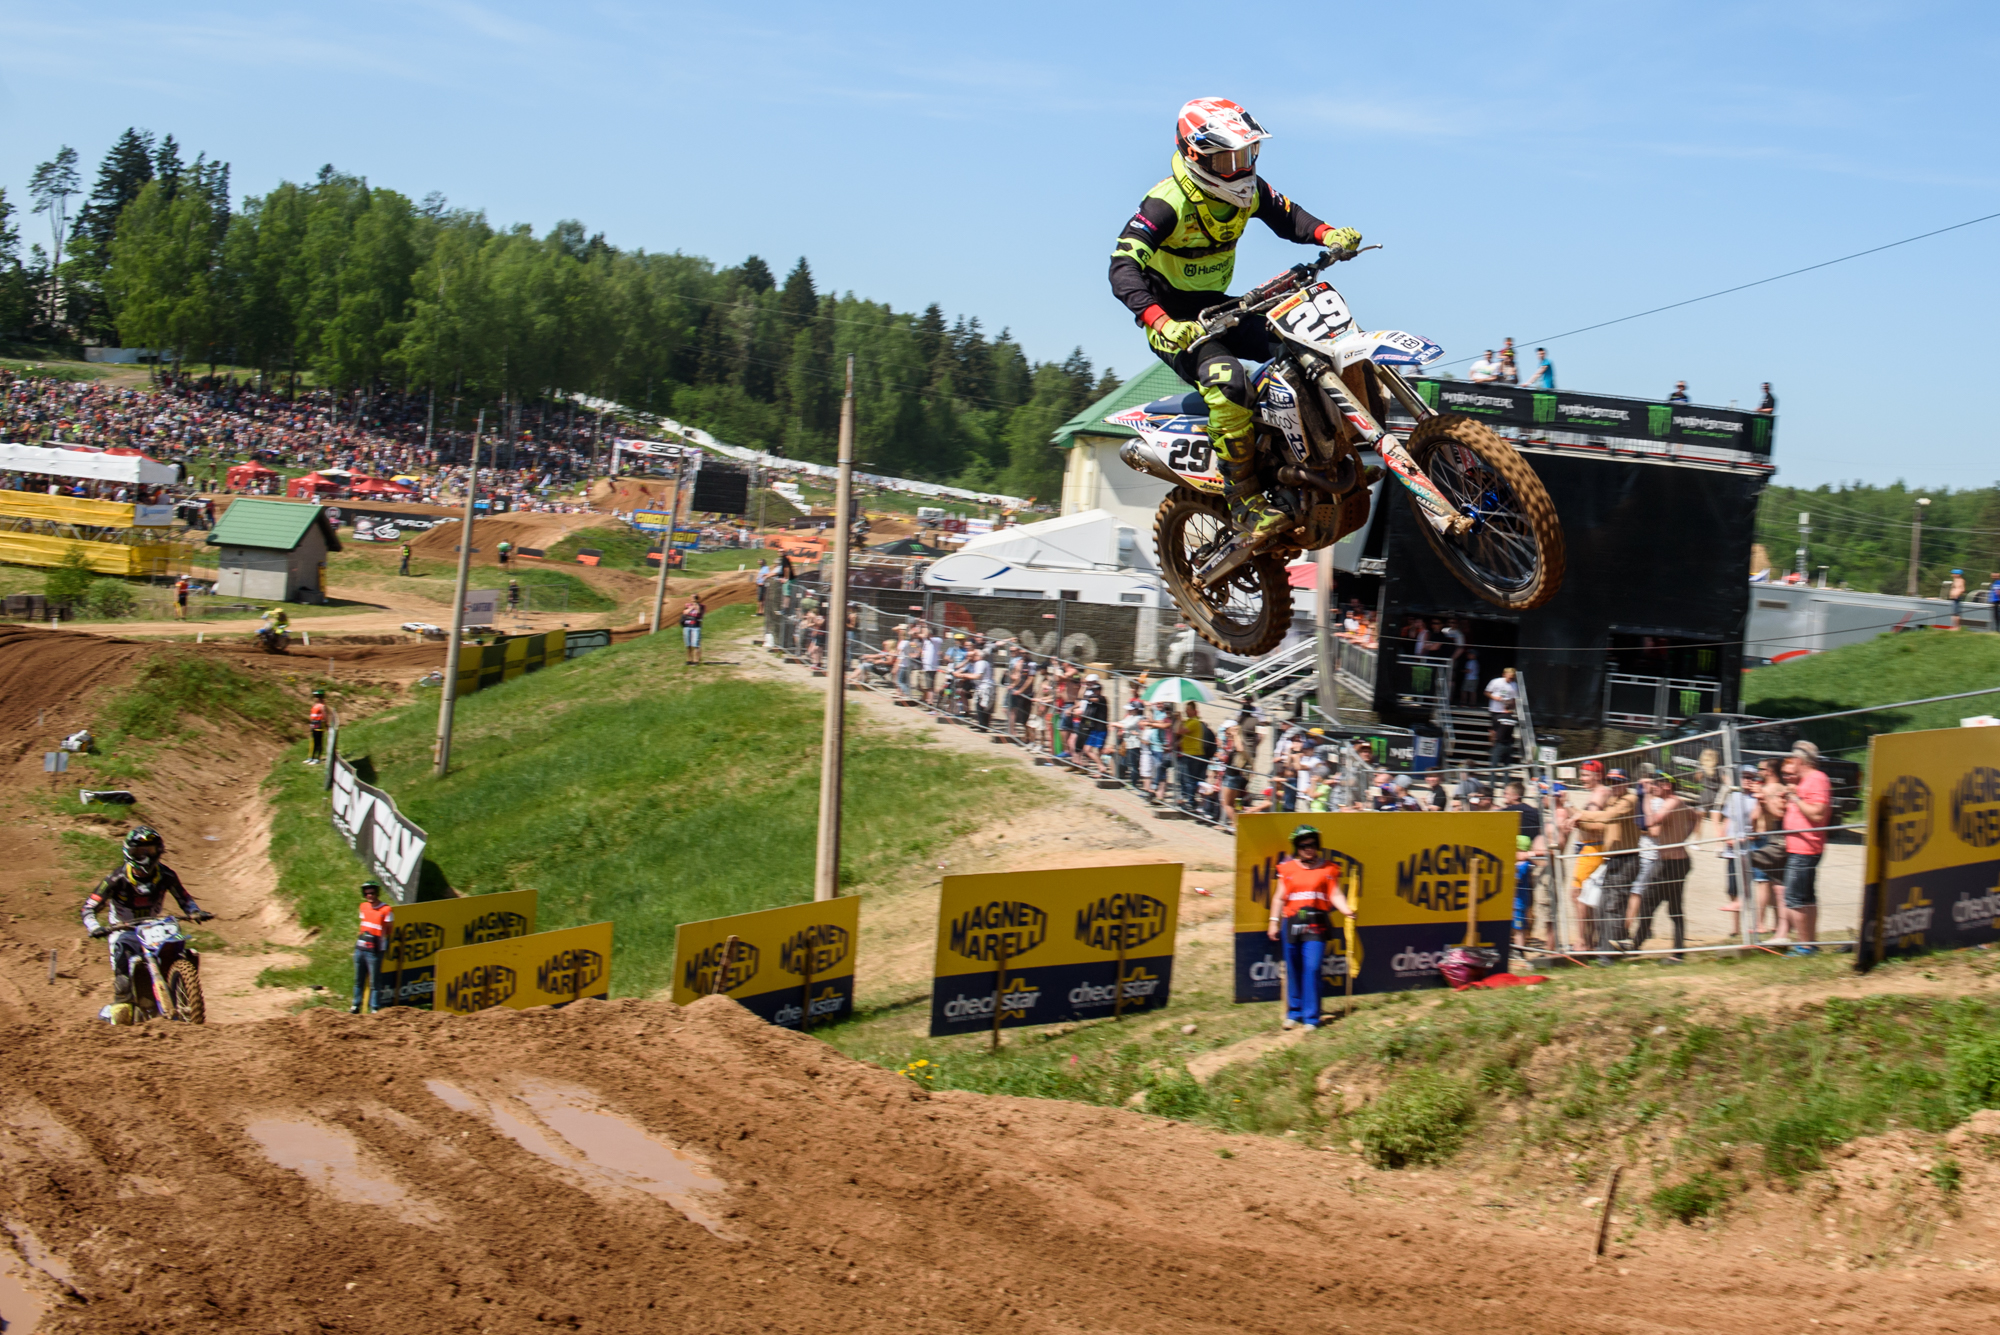 13.05.2018. KEGUMS, LATVIA. FIM MXGP Motocross World Championship Grand Prix of Latvia.